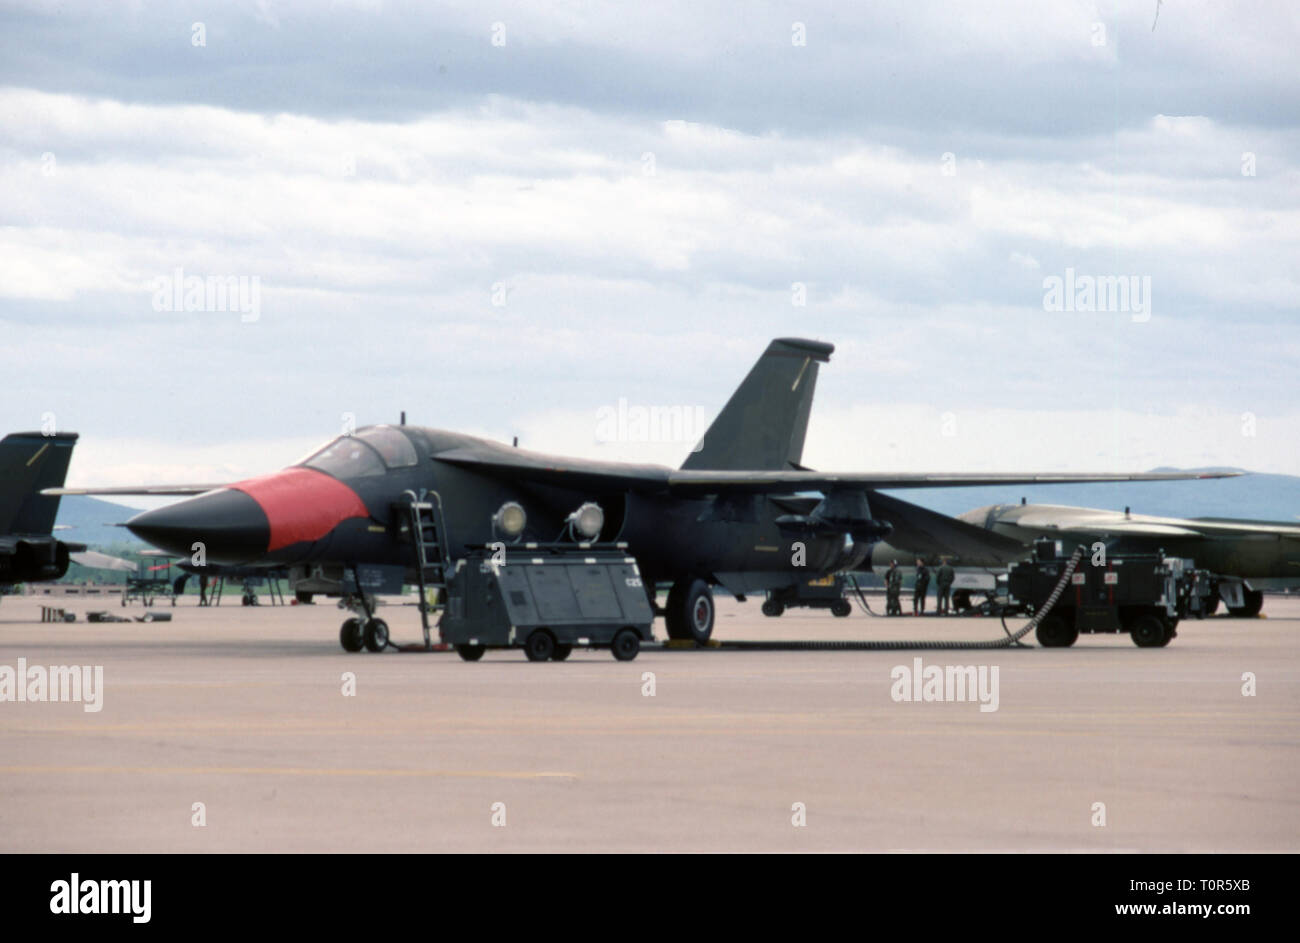 USAF United States Air Force General Dynamics FB-111A Aardvark - Stock Image